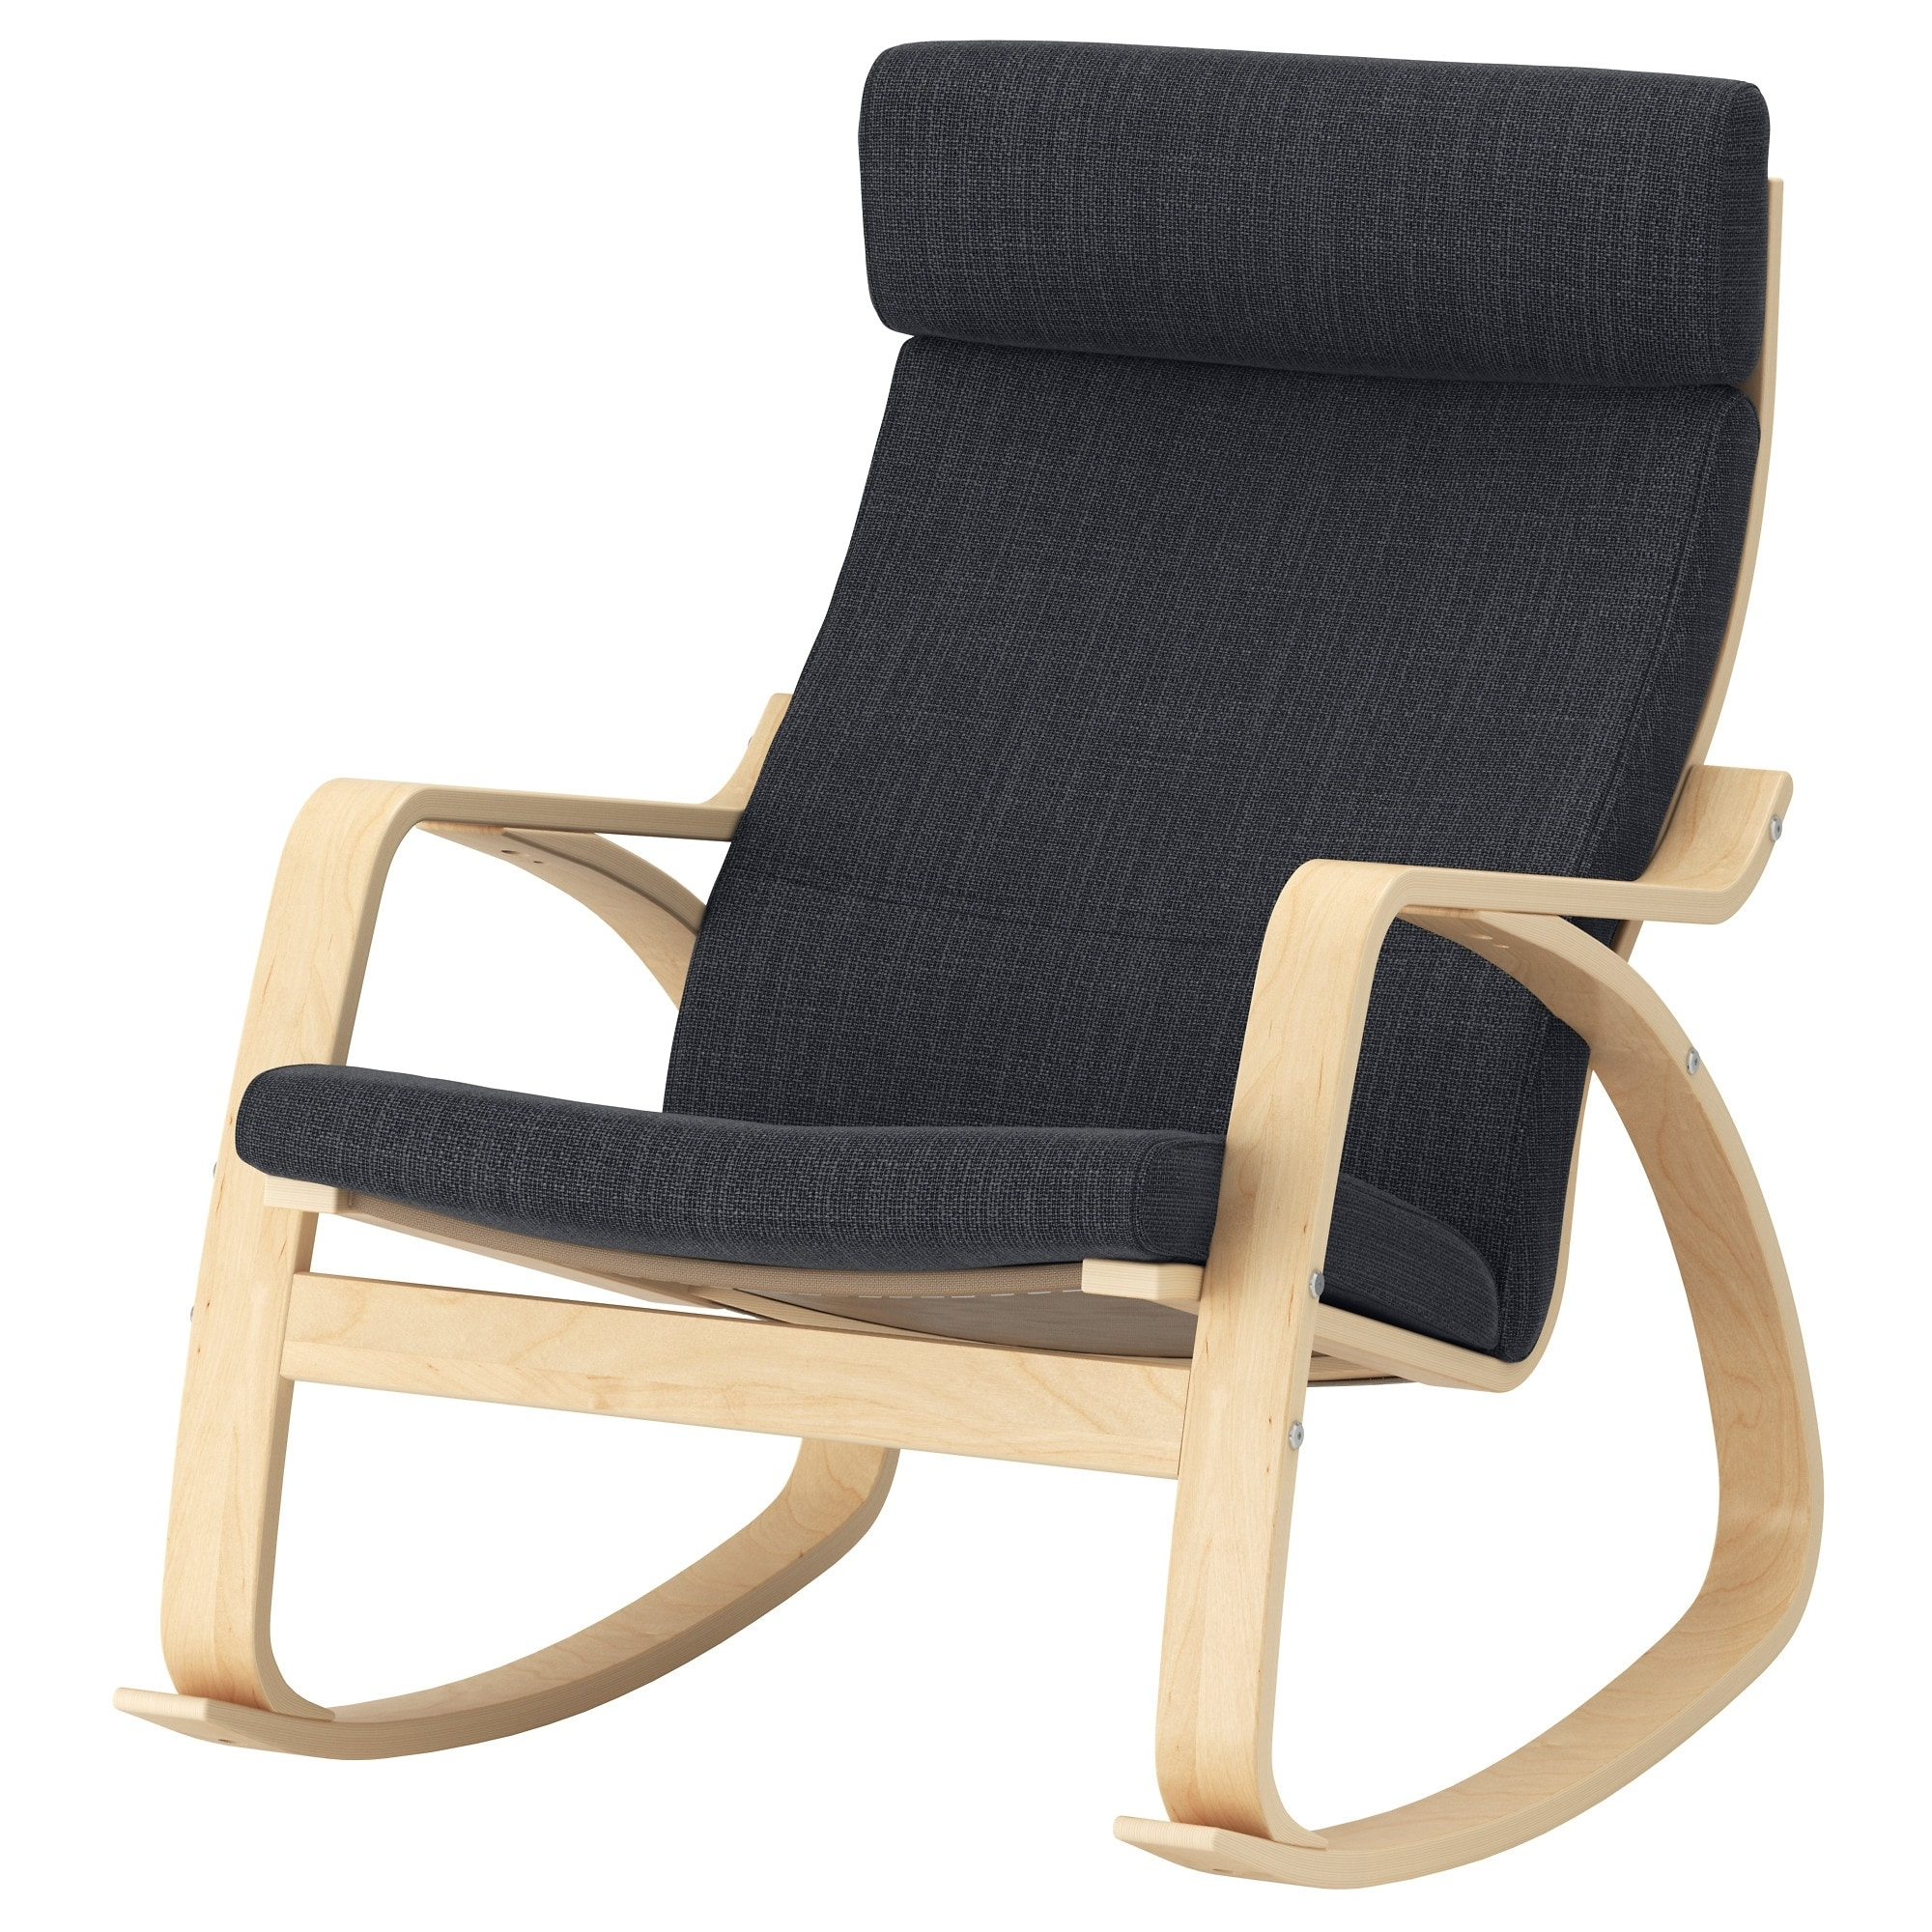 Inspiration about Poäng Rocking Chair Birch Veneer/hillared Anthracite – Ikea In Rocking Chairs At Ikea (#6 of 15)